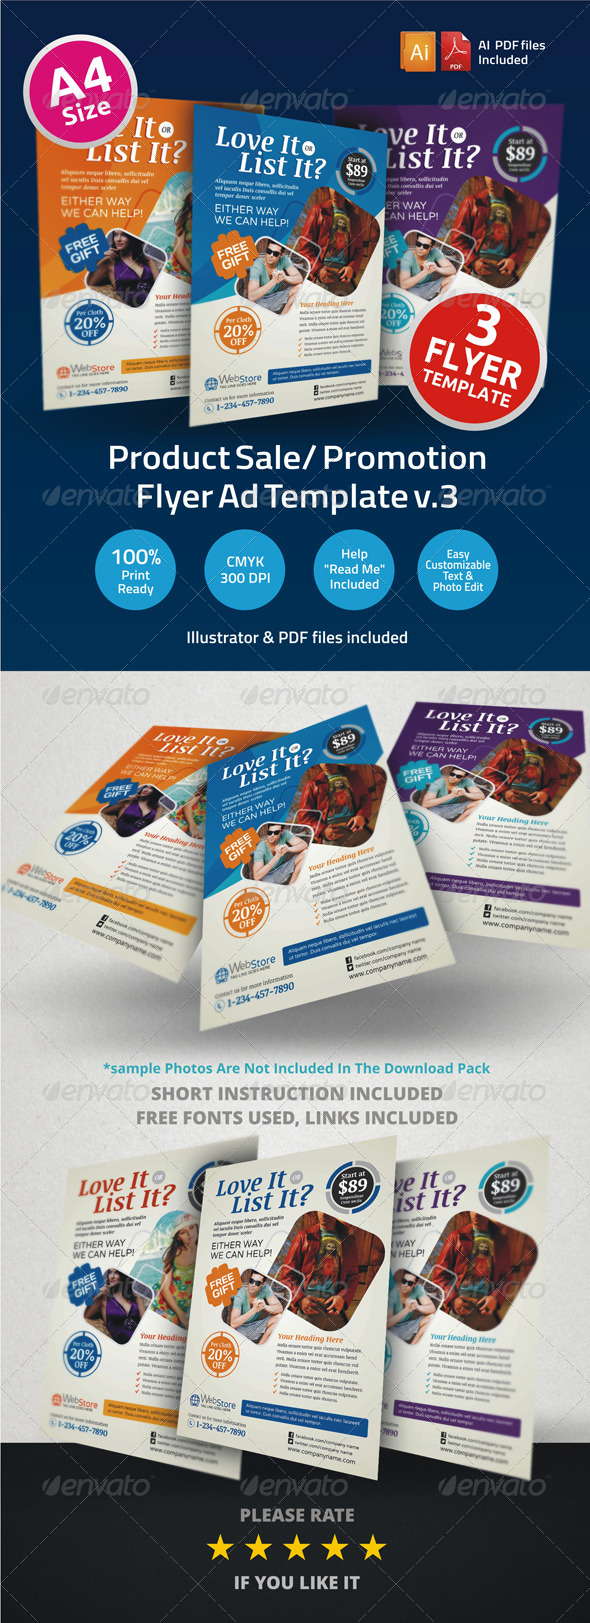 GraphicRiver Product Sale Promotion Flyer Ad Template v3 6331503